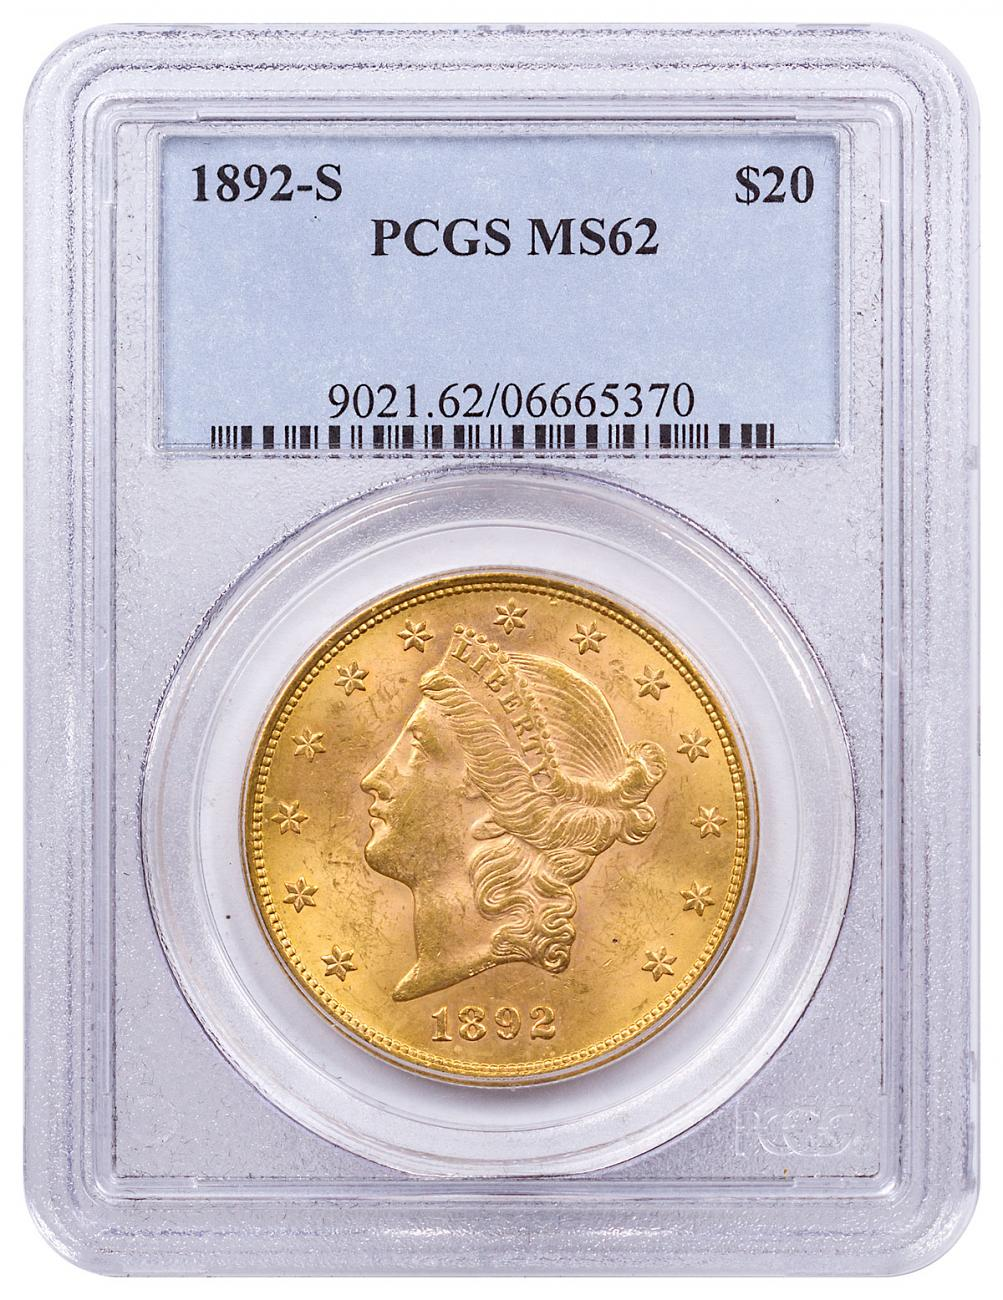 1892-S Liberty Head $20 Gold Double Eagles PCGS MS62